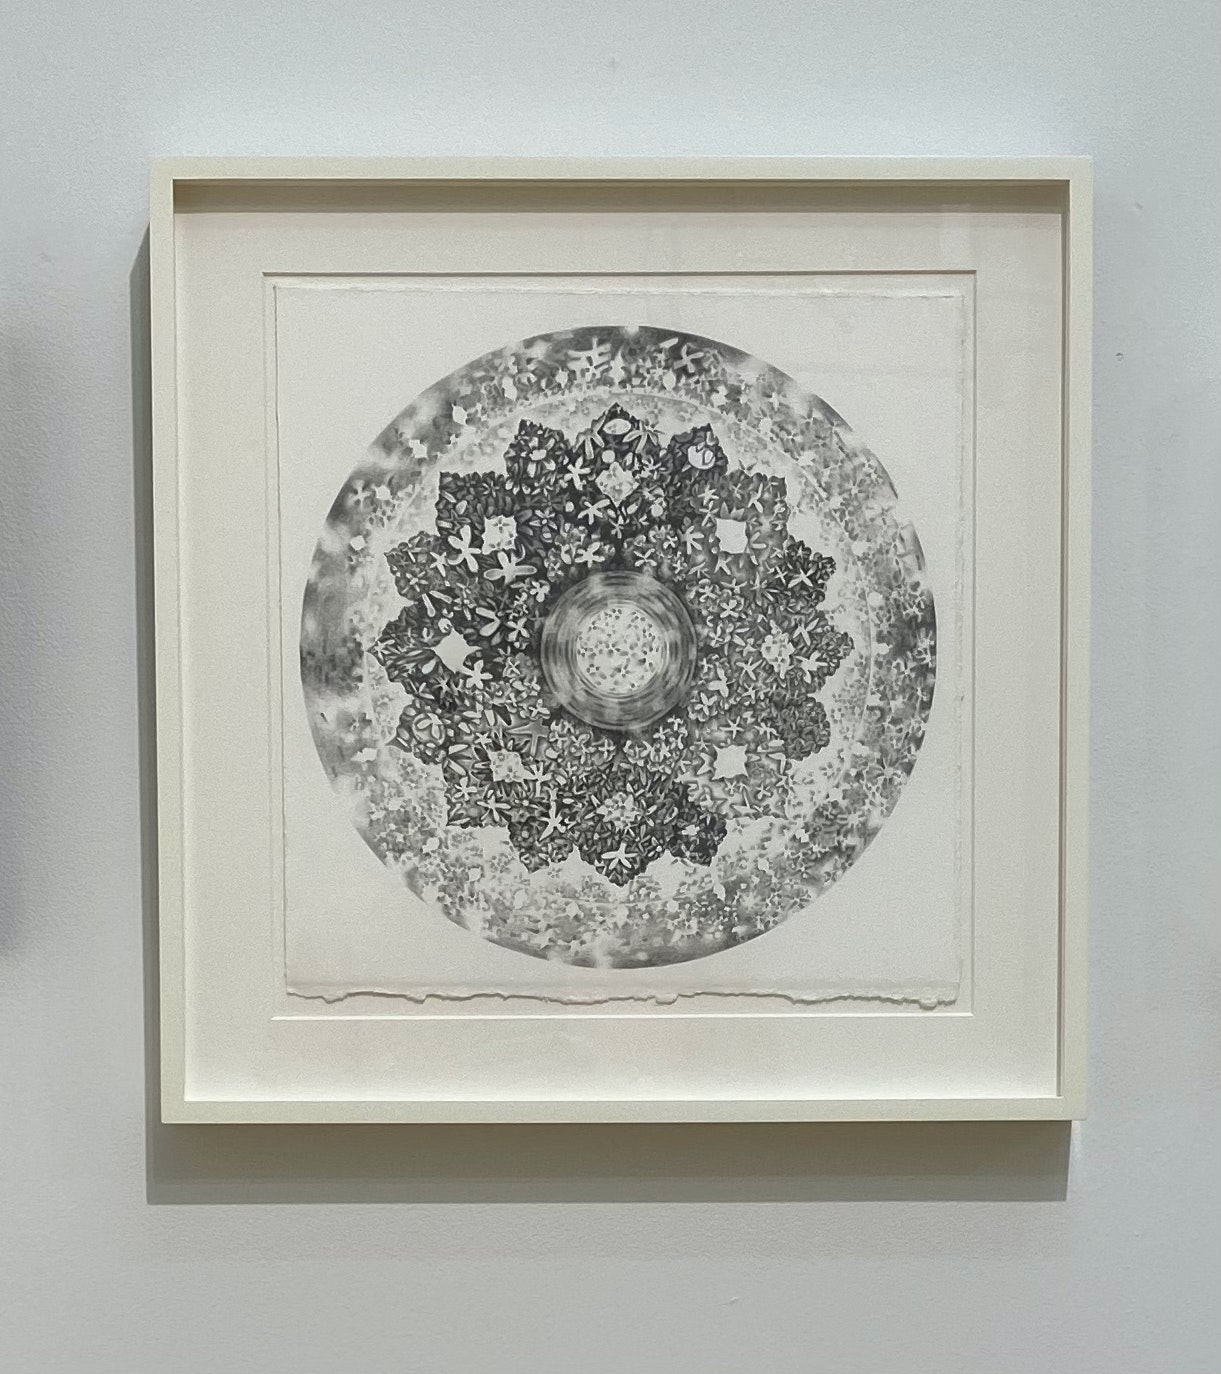 Shadow Rosette on the Face of the Moon by Alyssa Fanning